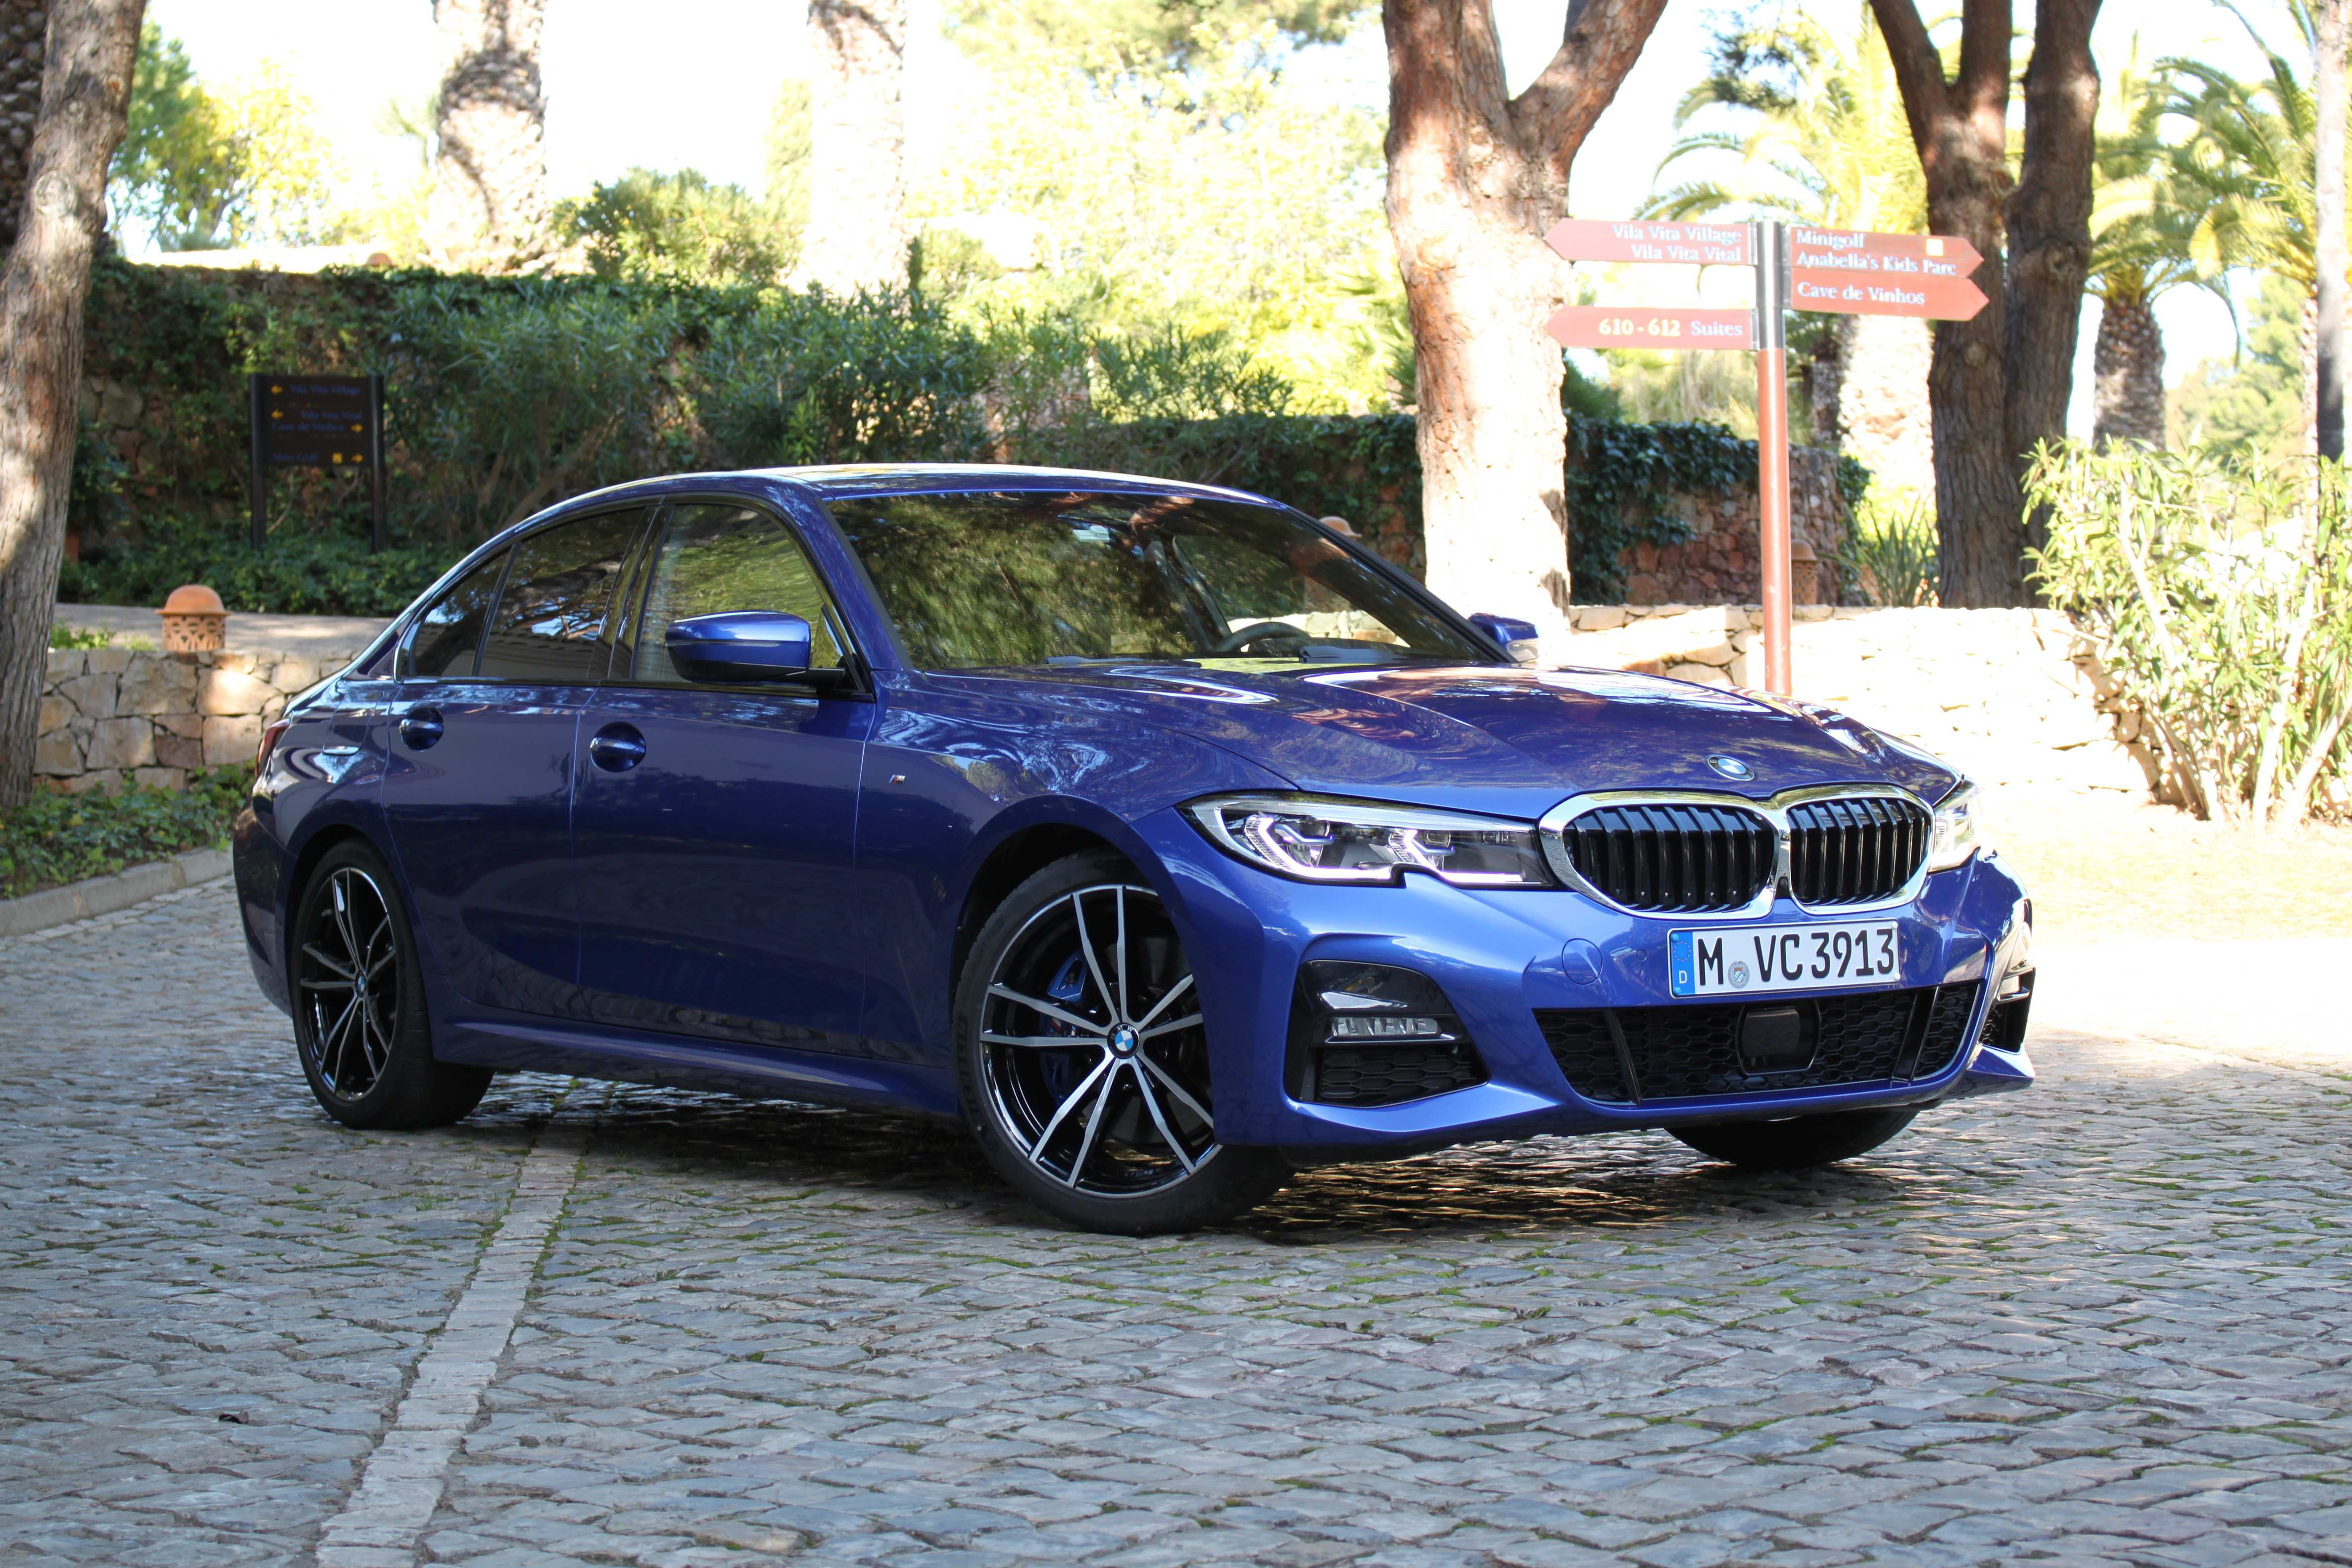 92 Great 2020 BMW 3 Series Model by 2020 BMW 3 Series